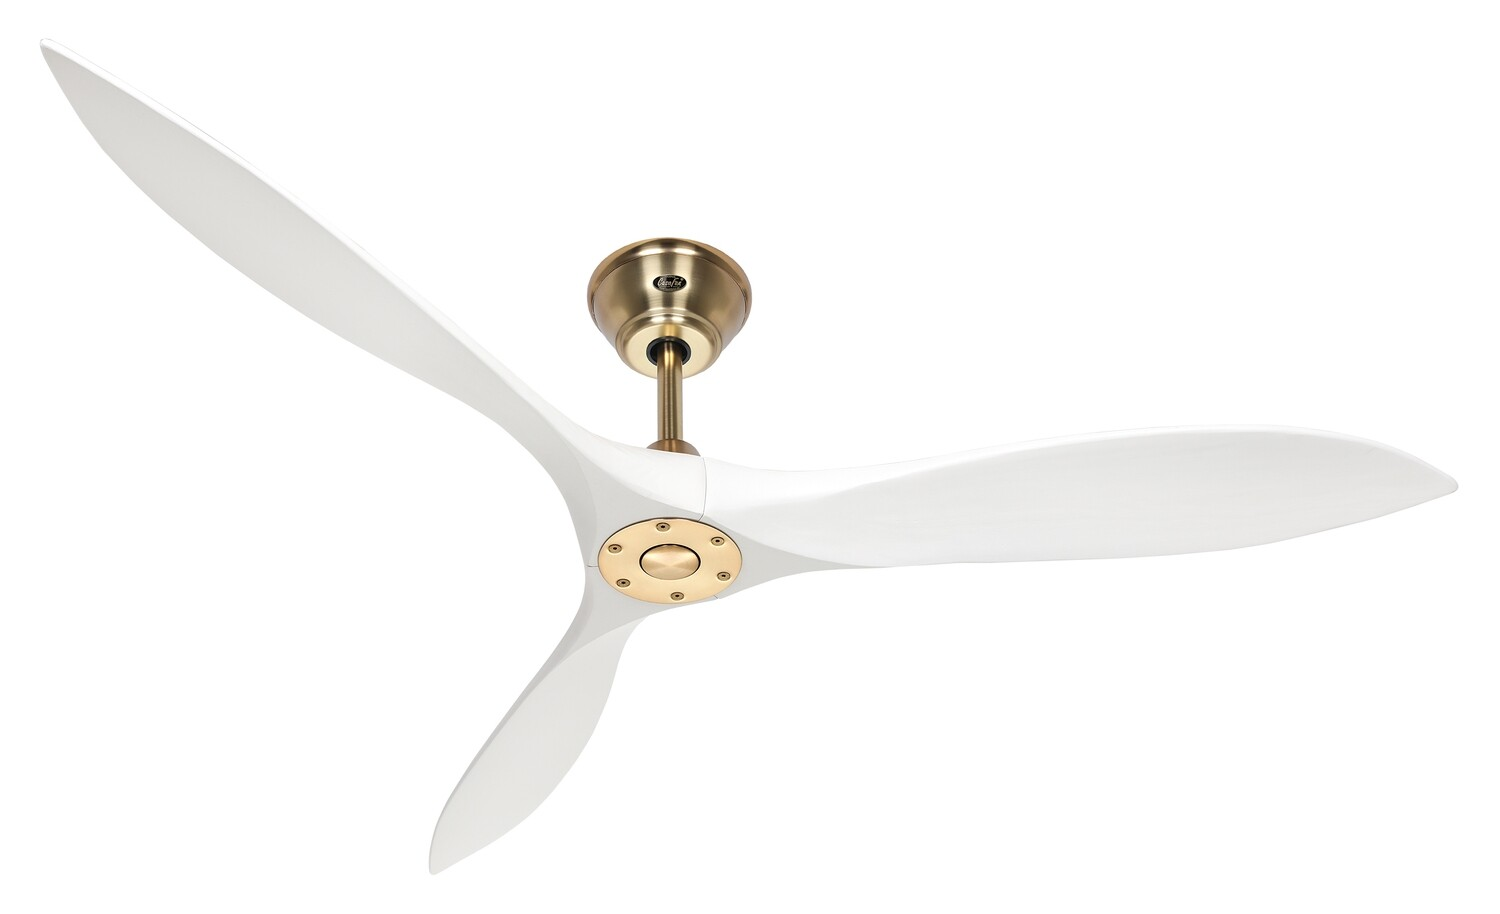 ECO AIRSCREW MG-MW energy saving ceiling fan by CASAFAN Ø152 with remote control included